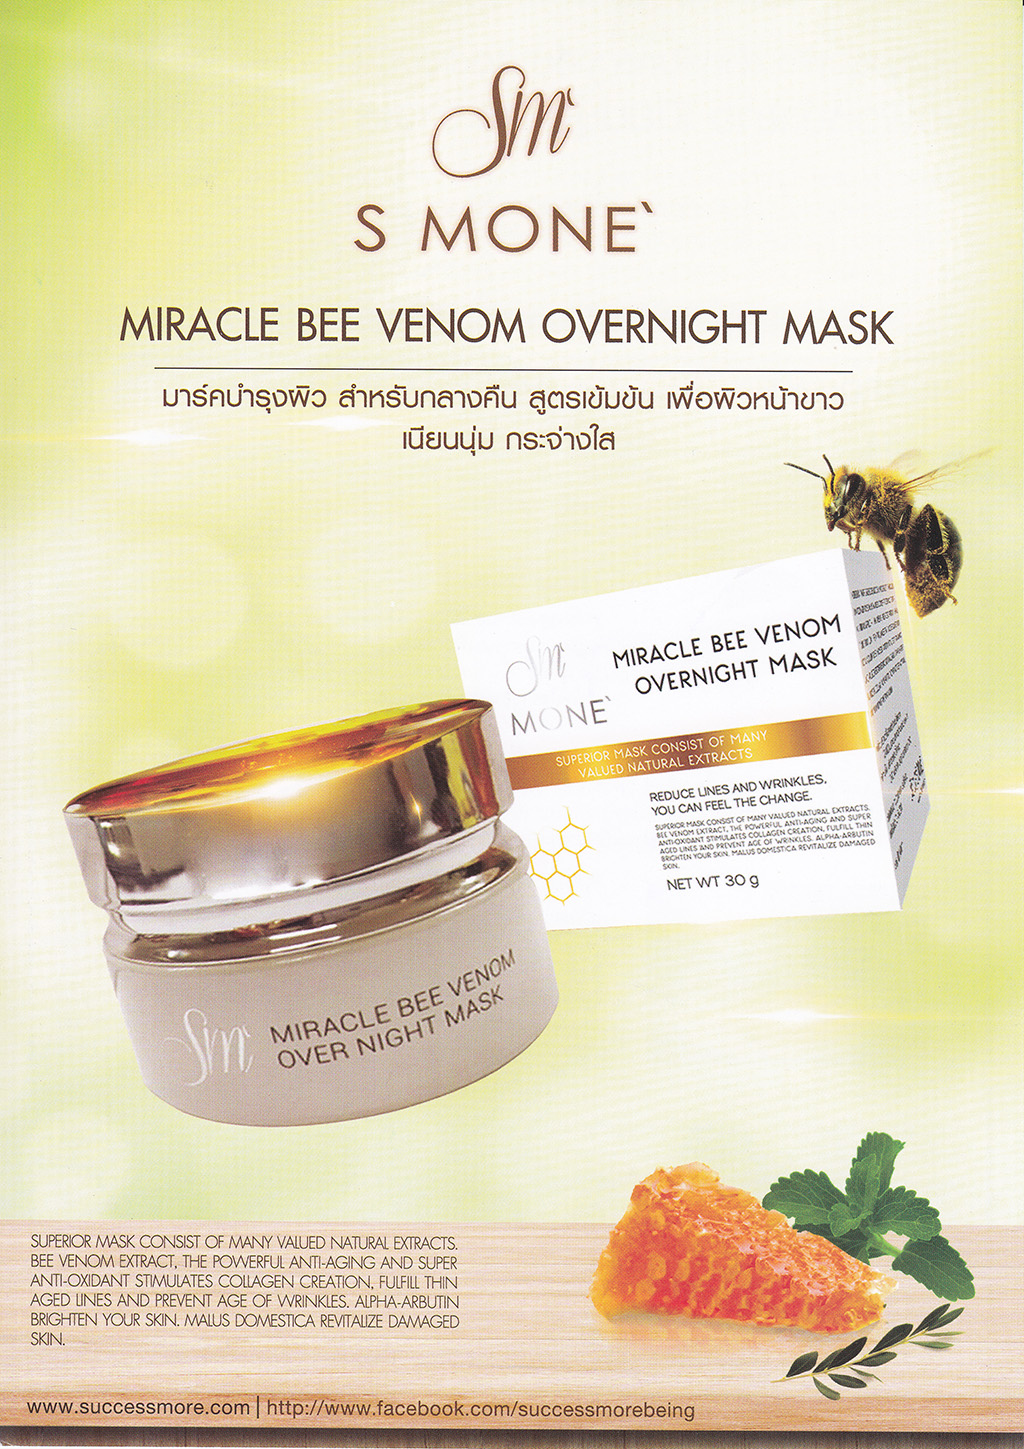 S MONE MIRACLE BEE VENOM OVERNIGHT MASK-1